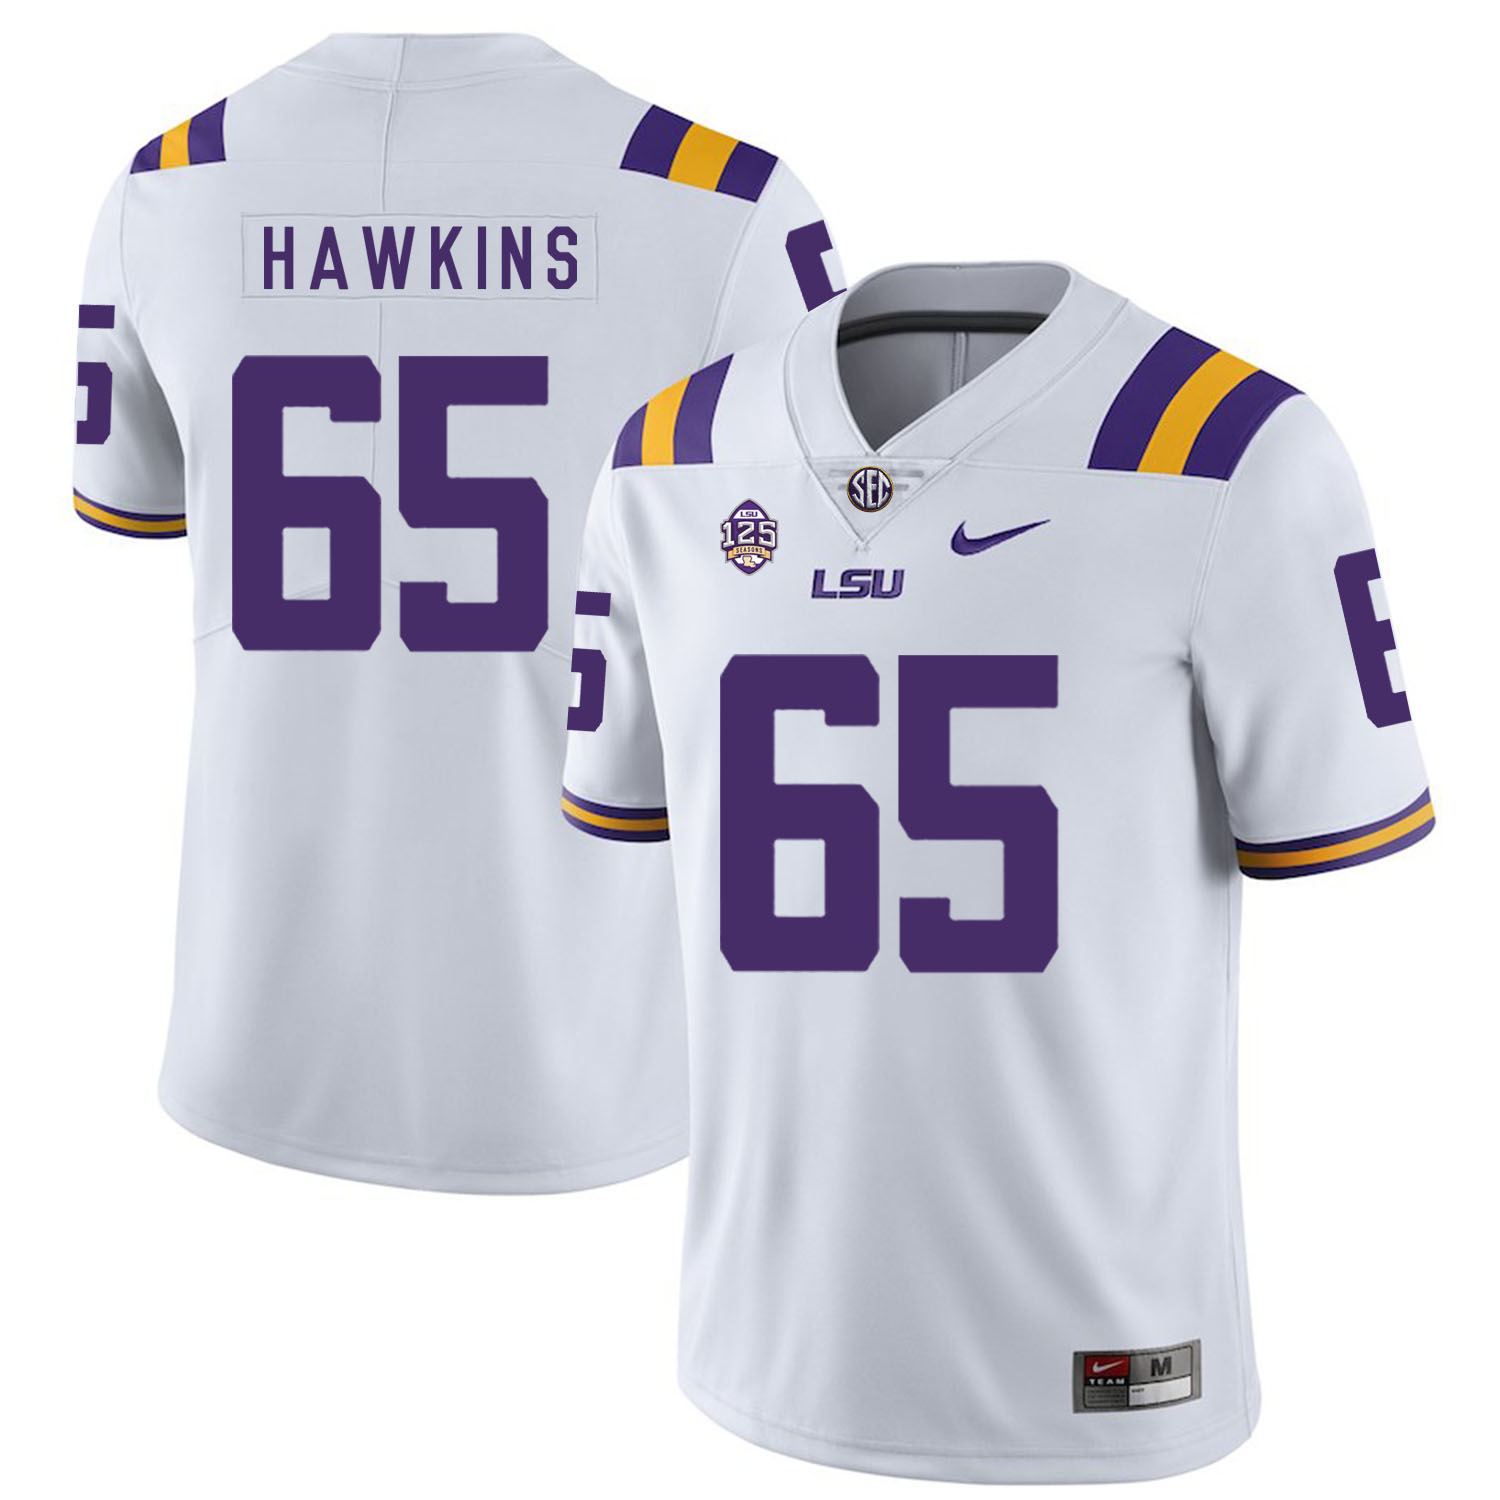 LSU Tigers 65 Jerald Hawkins White Nike College Football Jersey